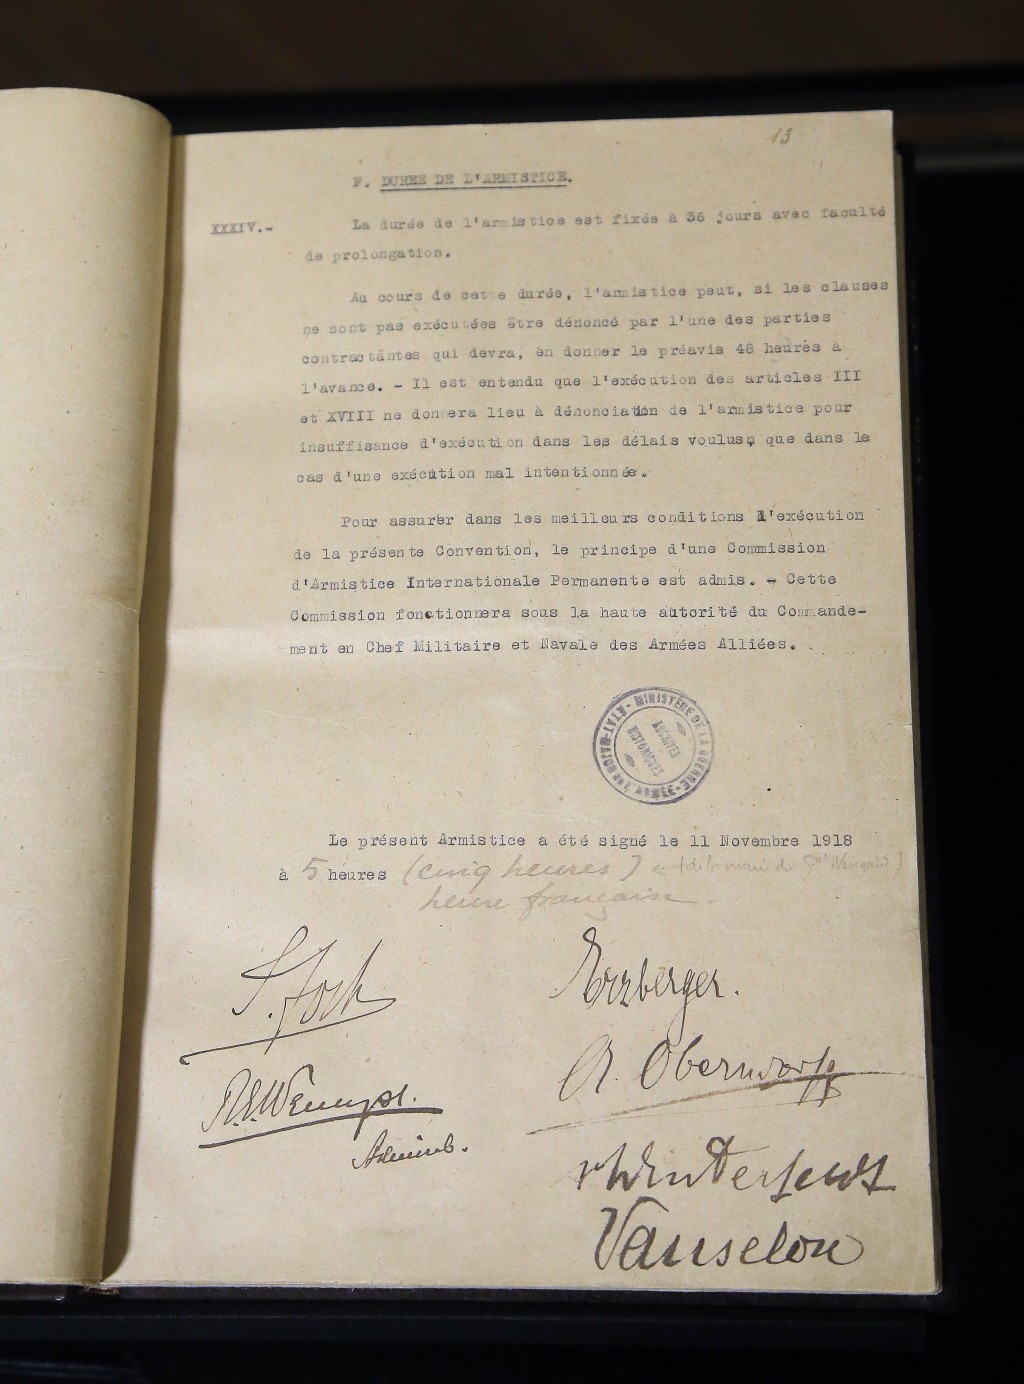 This Tuesday, Oct. 30, 2018 photo shows the Armistice document signed by the Allies and the Germans in a carriage in Rethondes, north of Paris, at 05: